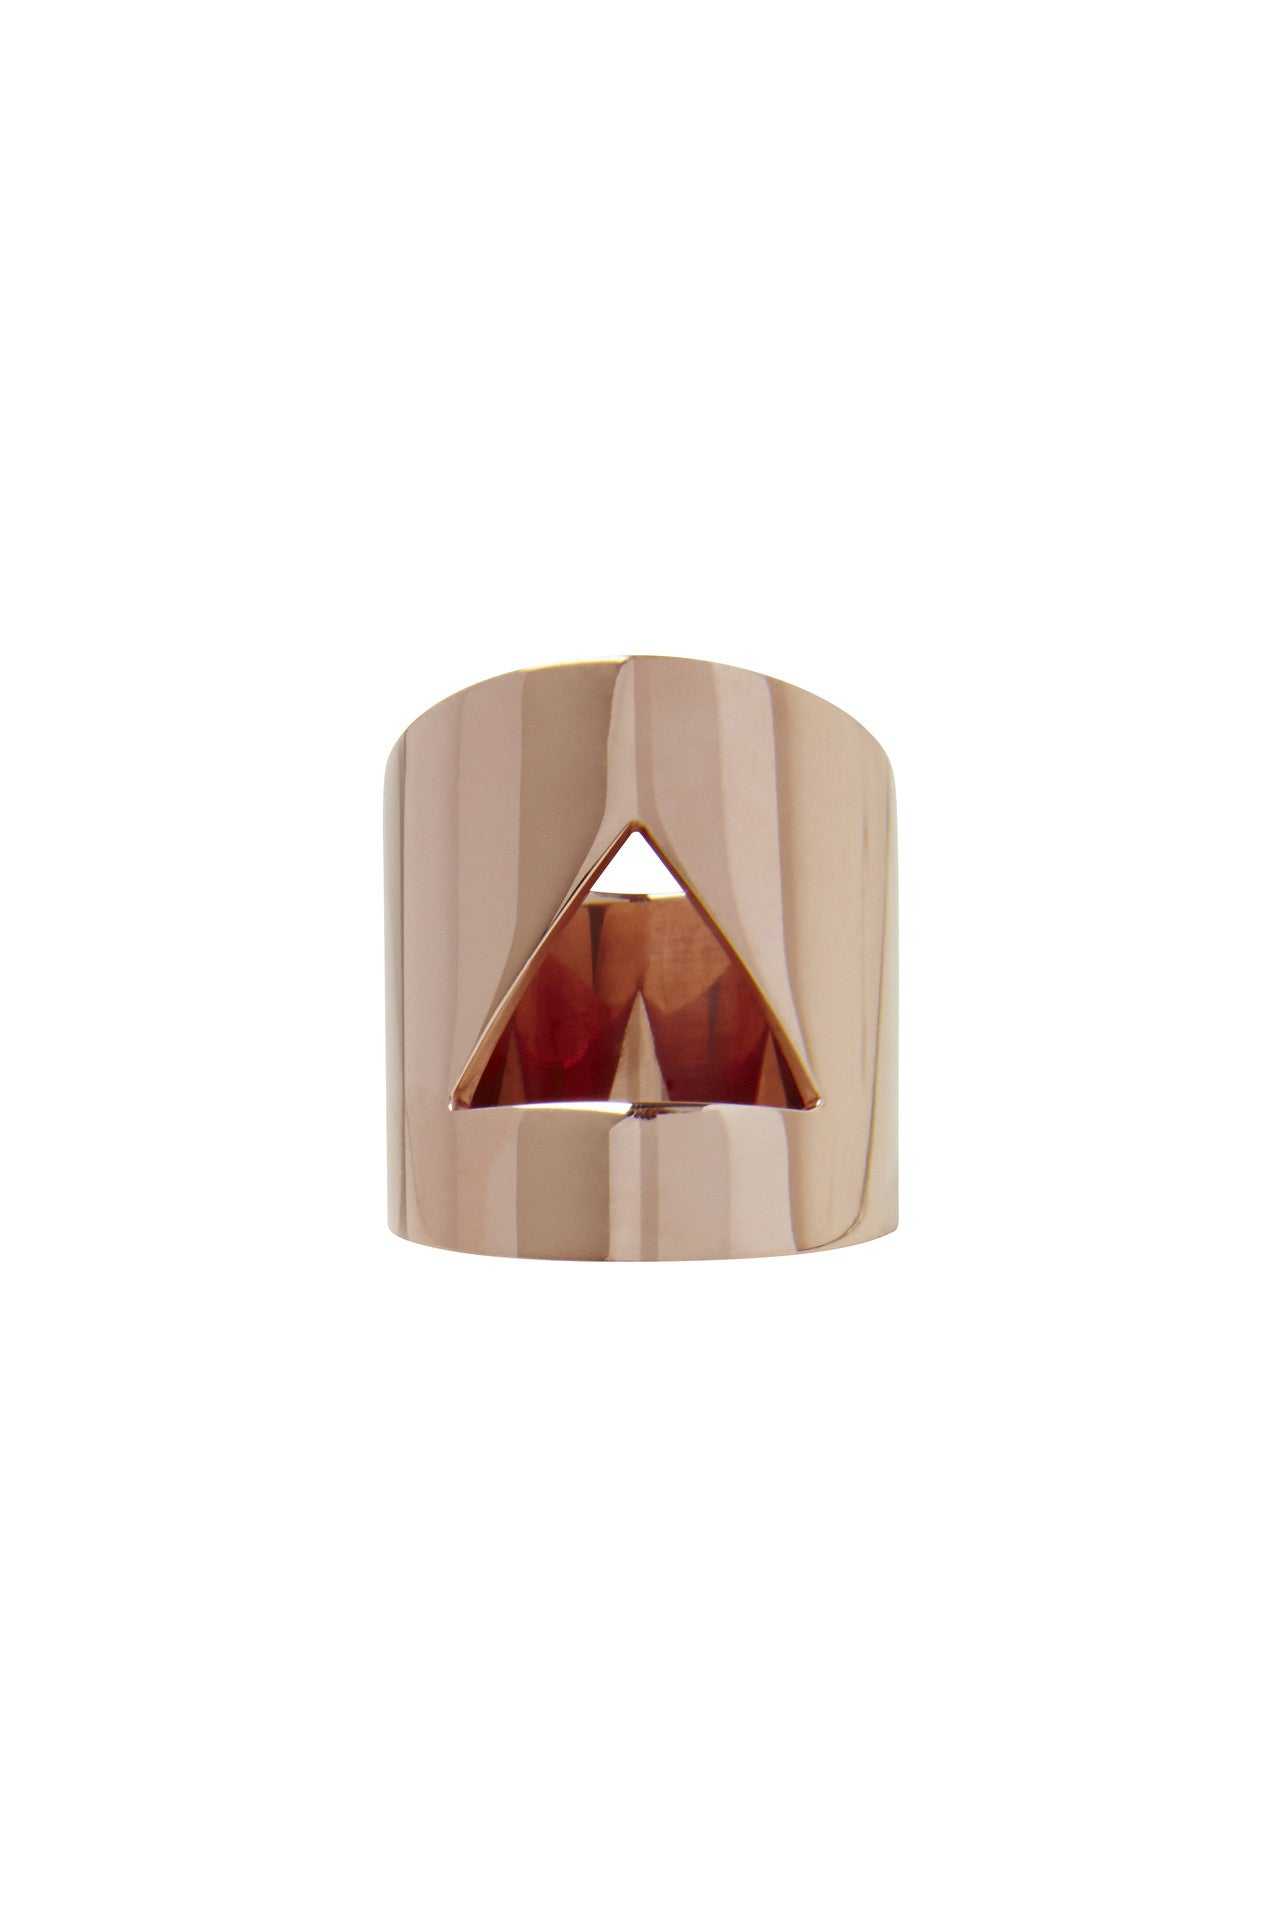 Vera Xane Barrel Triangle Ring Rose Gold